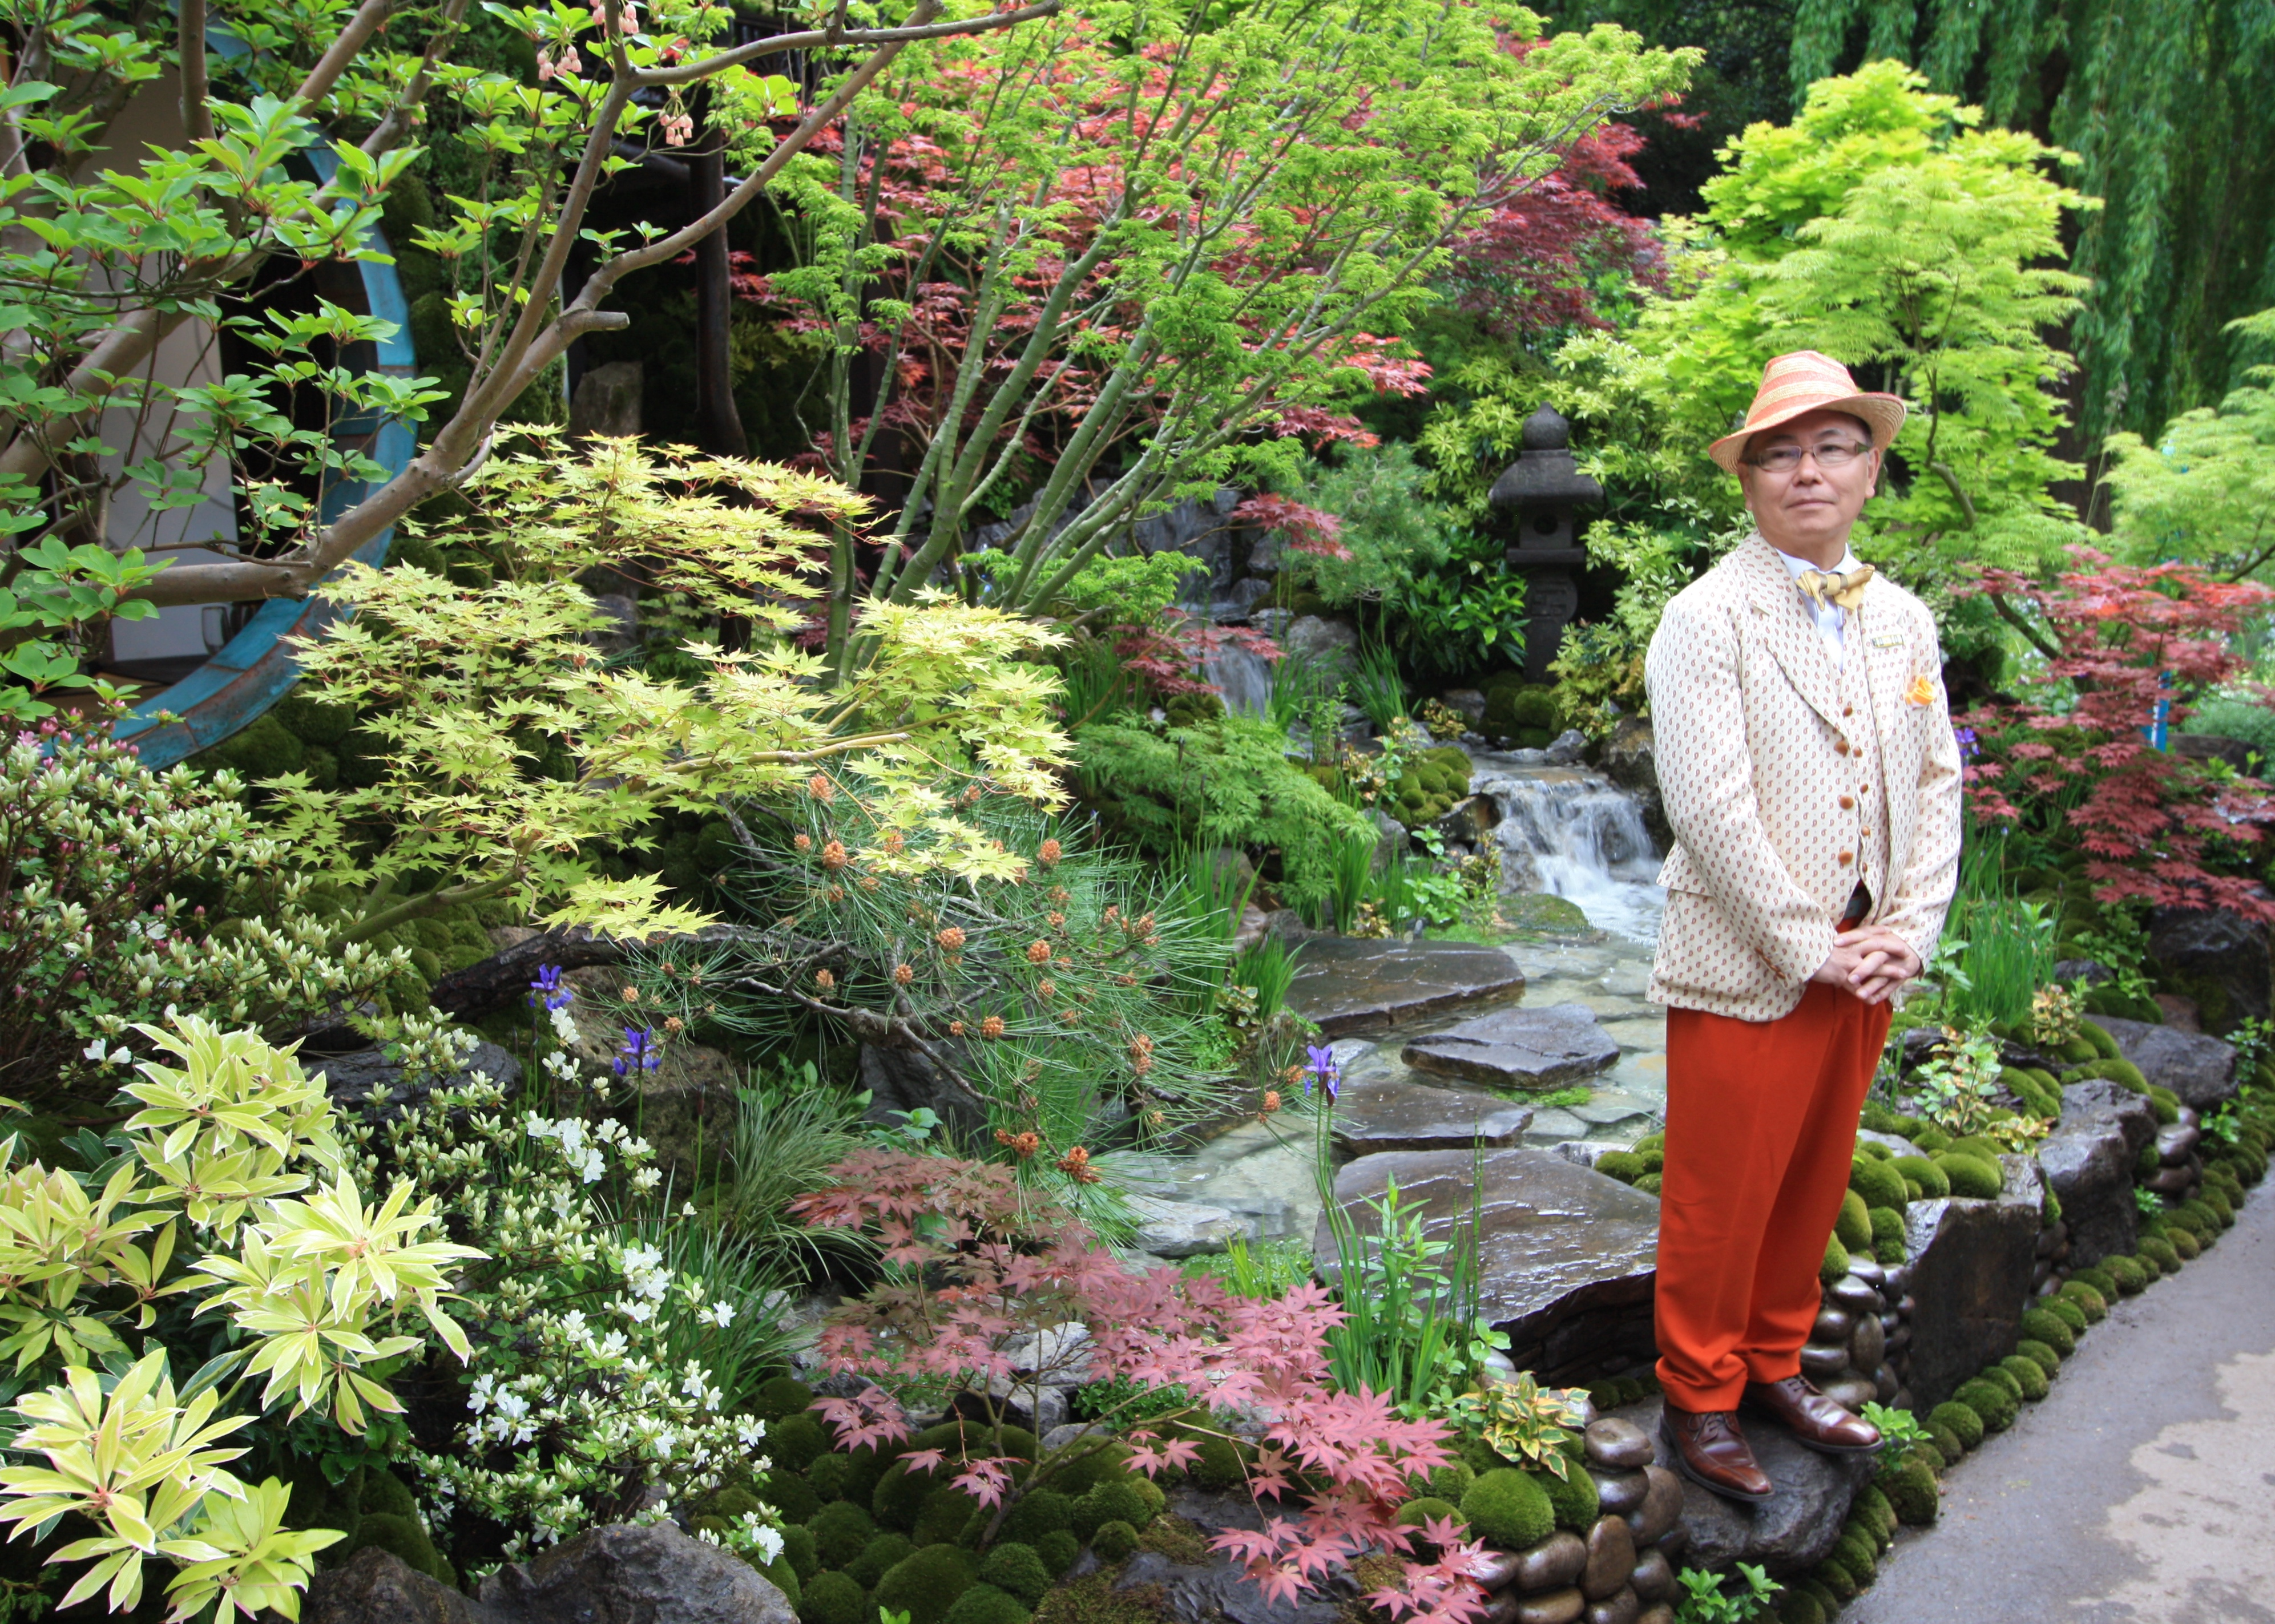 chelsea flower show 2015 – stars of the show: edo no niwa by